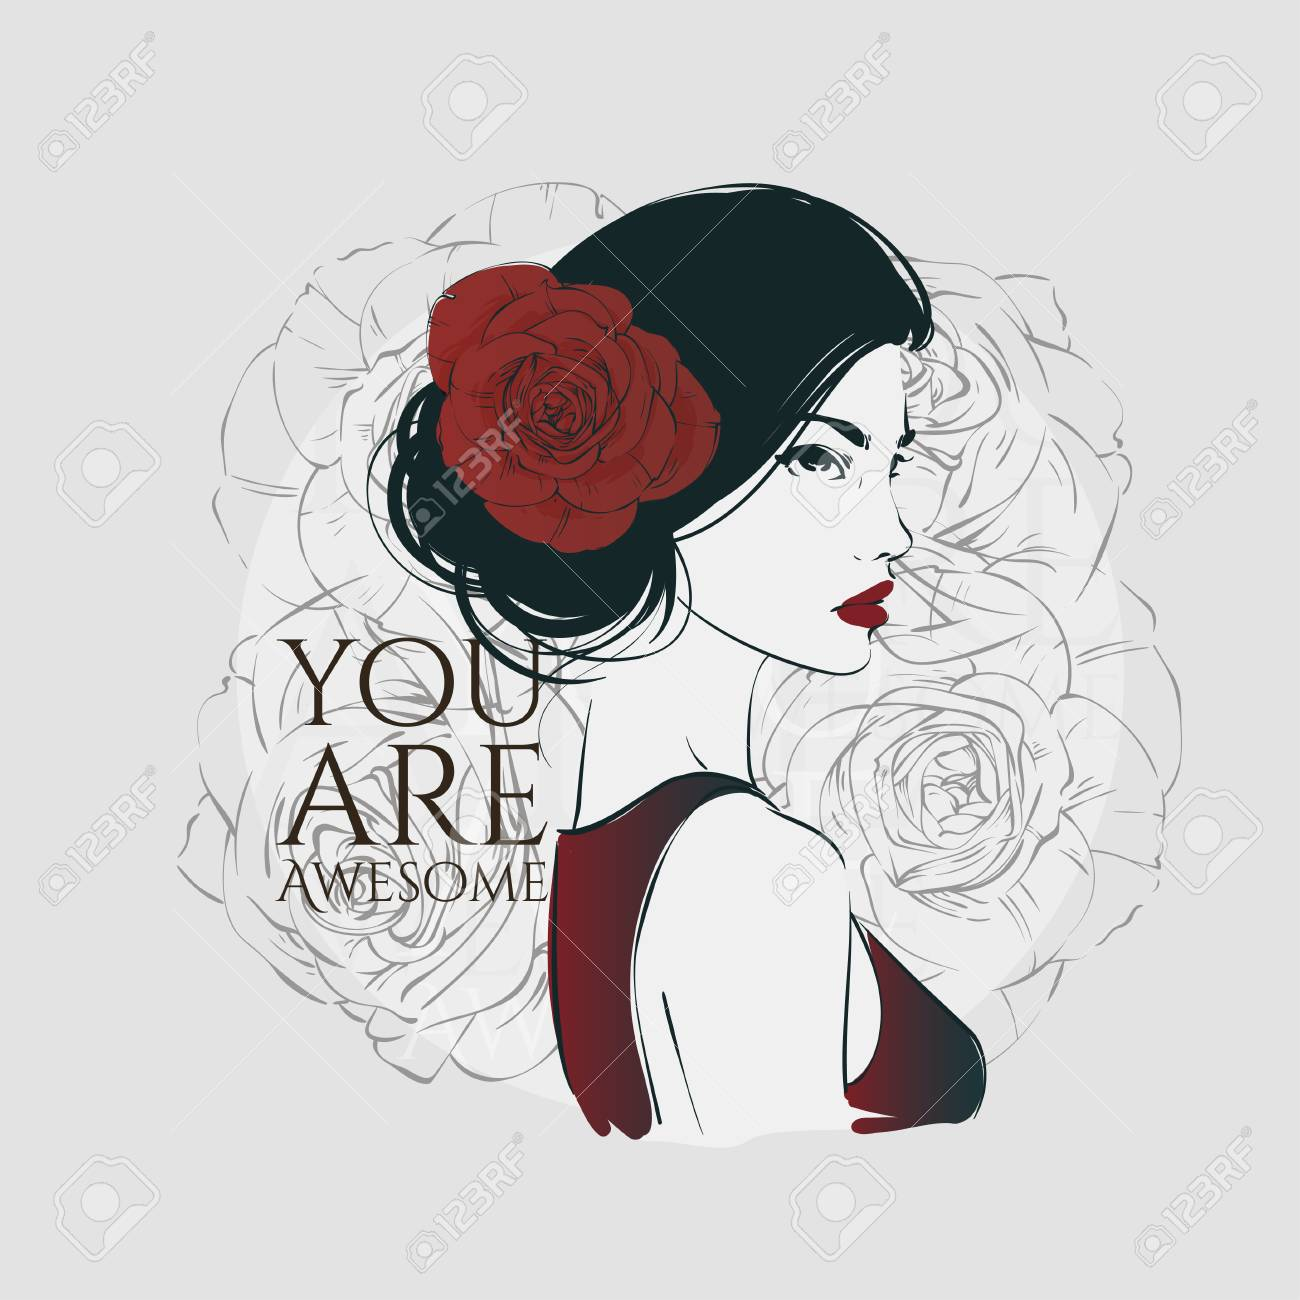 Portrait Of Young Beautiful Woman With Red Rose In Hair Vector